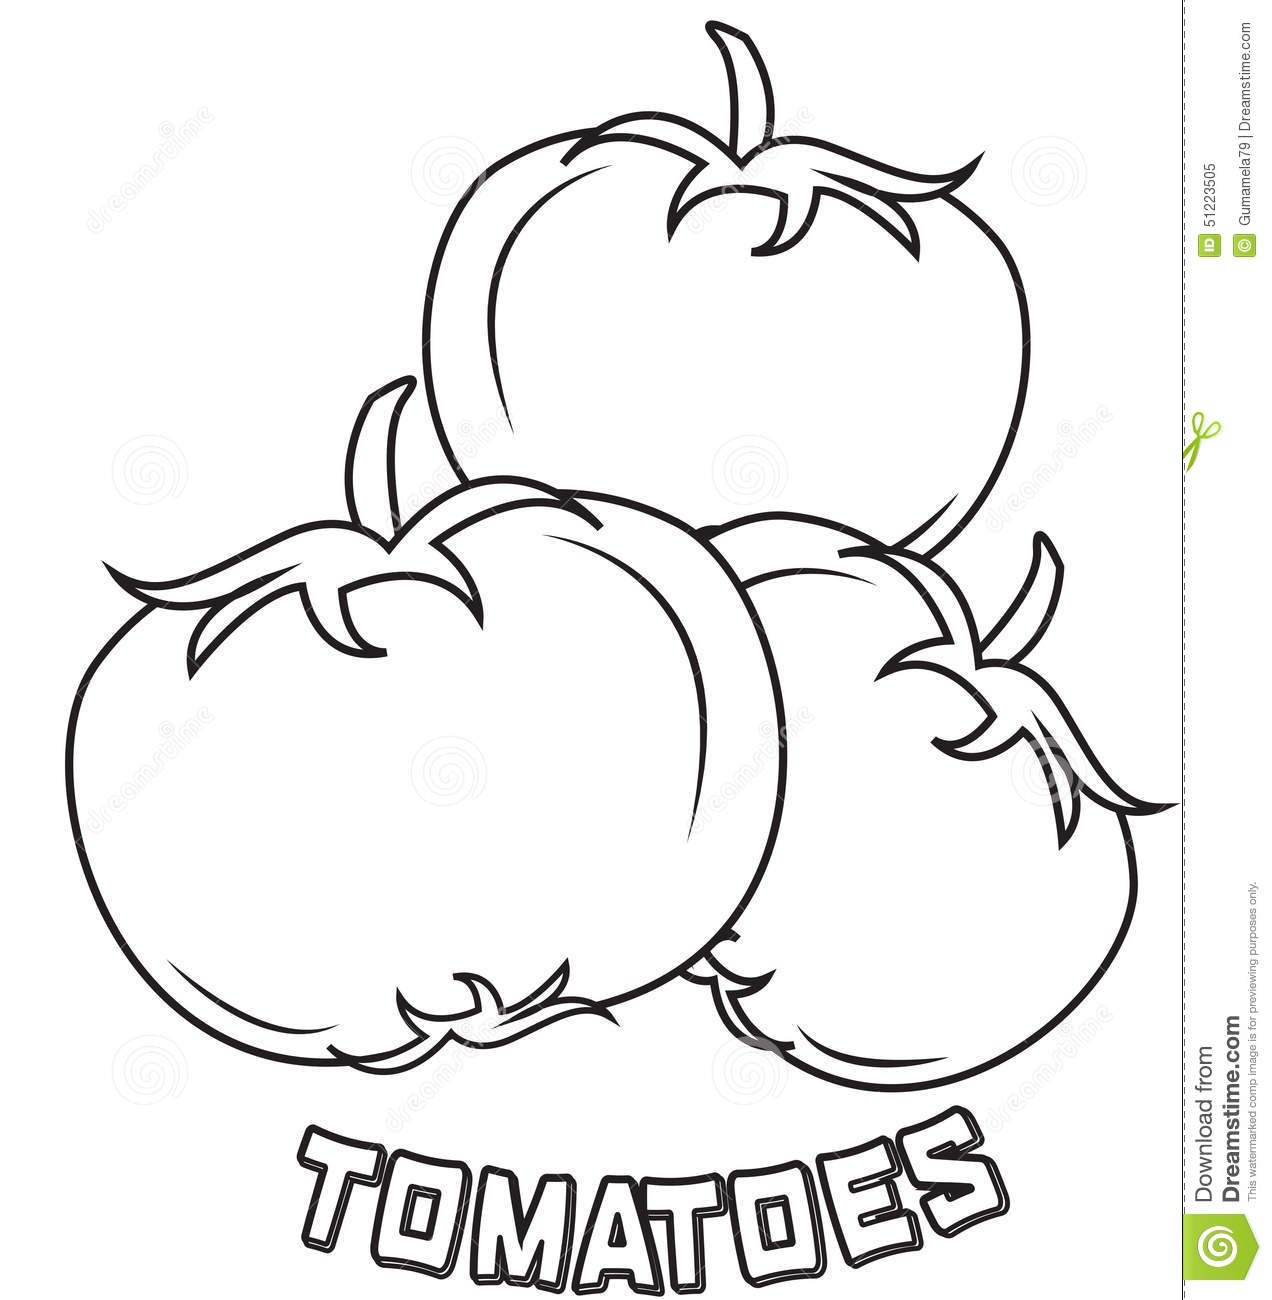 Tomatoes coloring page stock illustration. Illustration of closeup ...